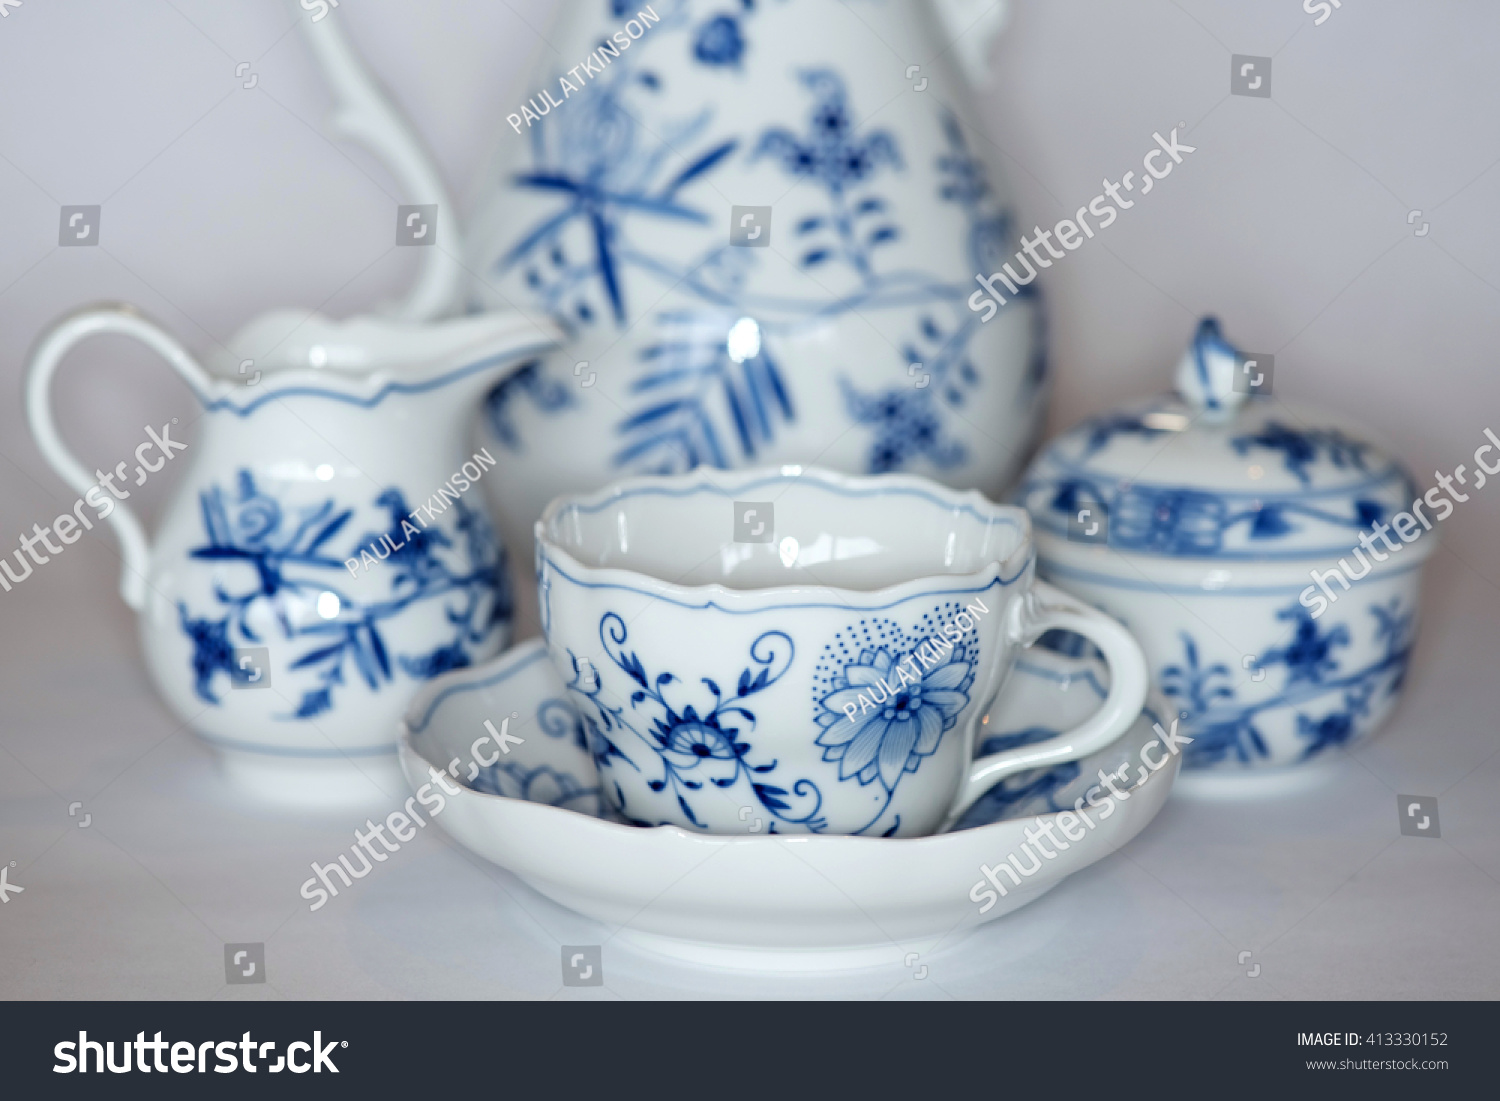 German blue white porcelain coffee service stock photo for Decorating with blue and white pottery